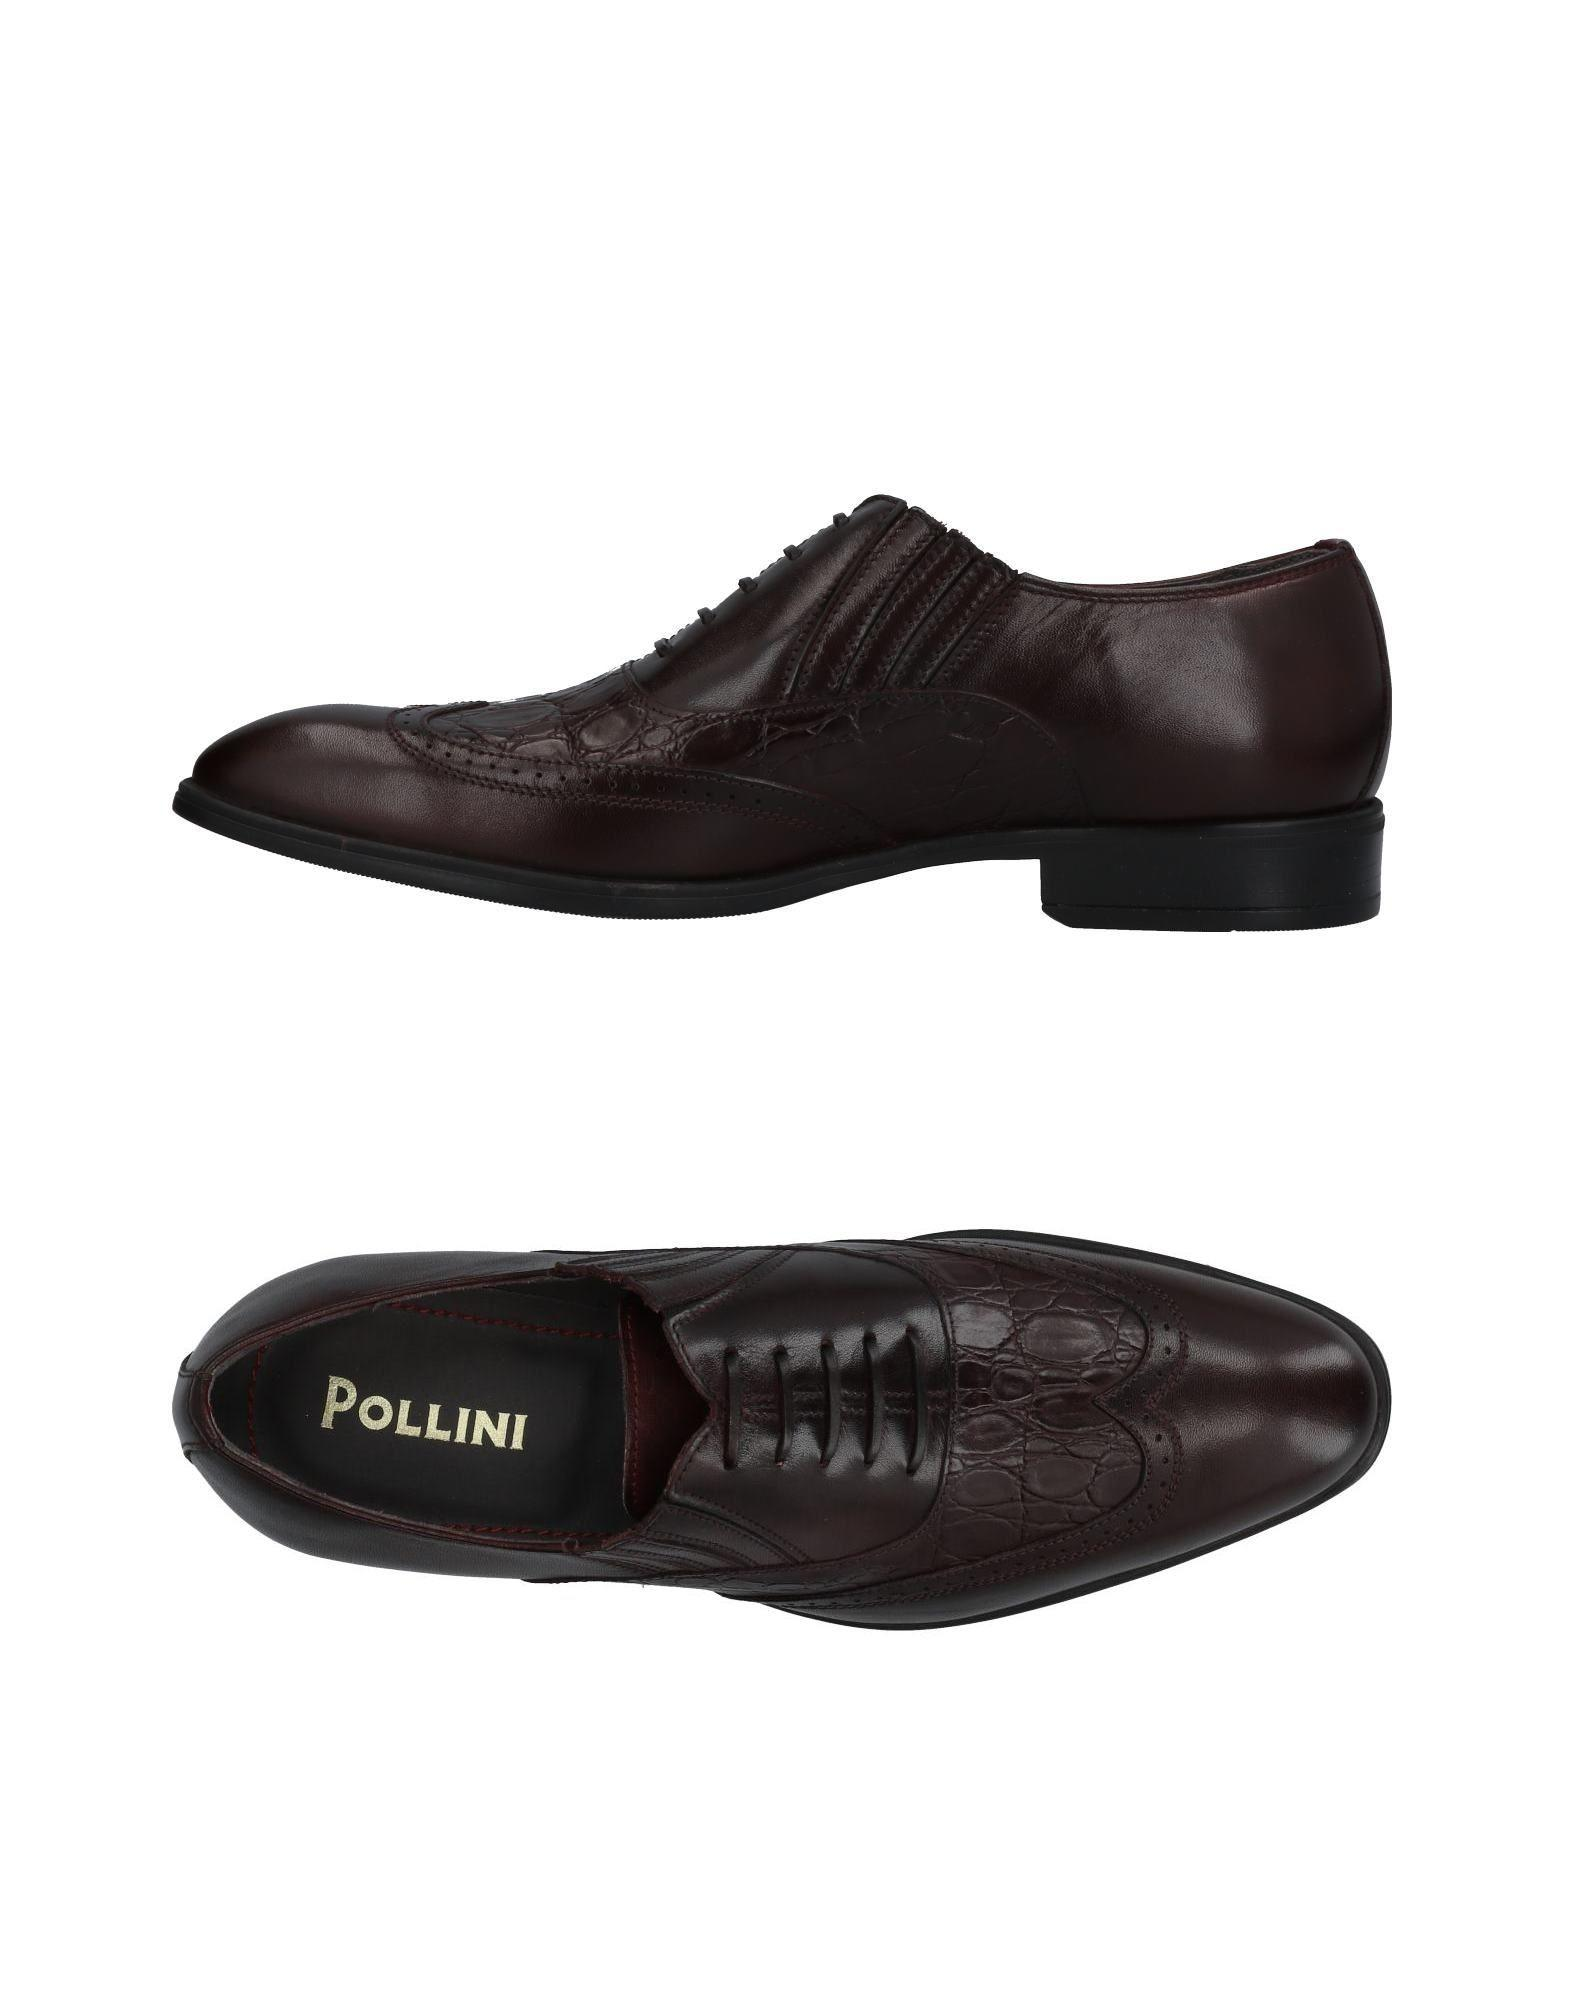 Pollini Loafers In Maroon